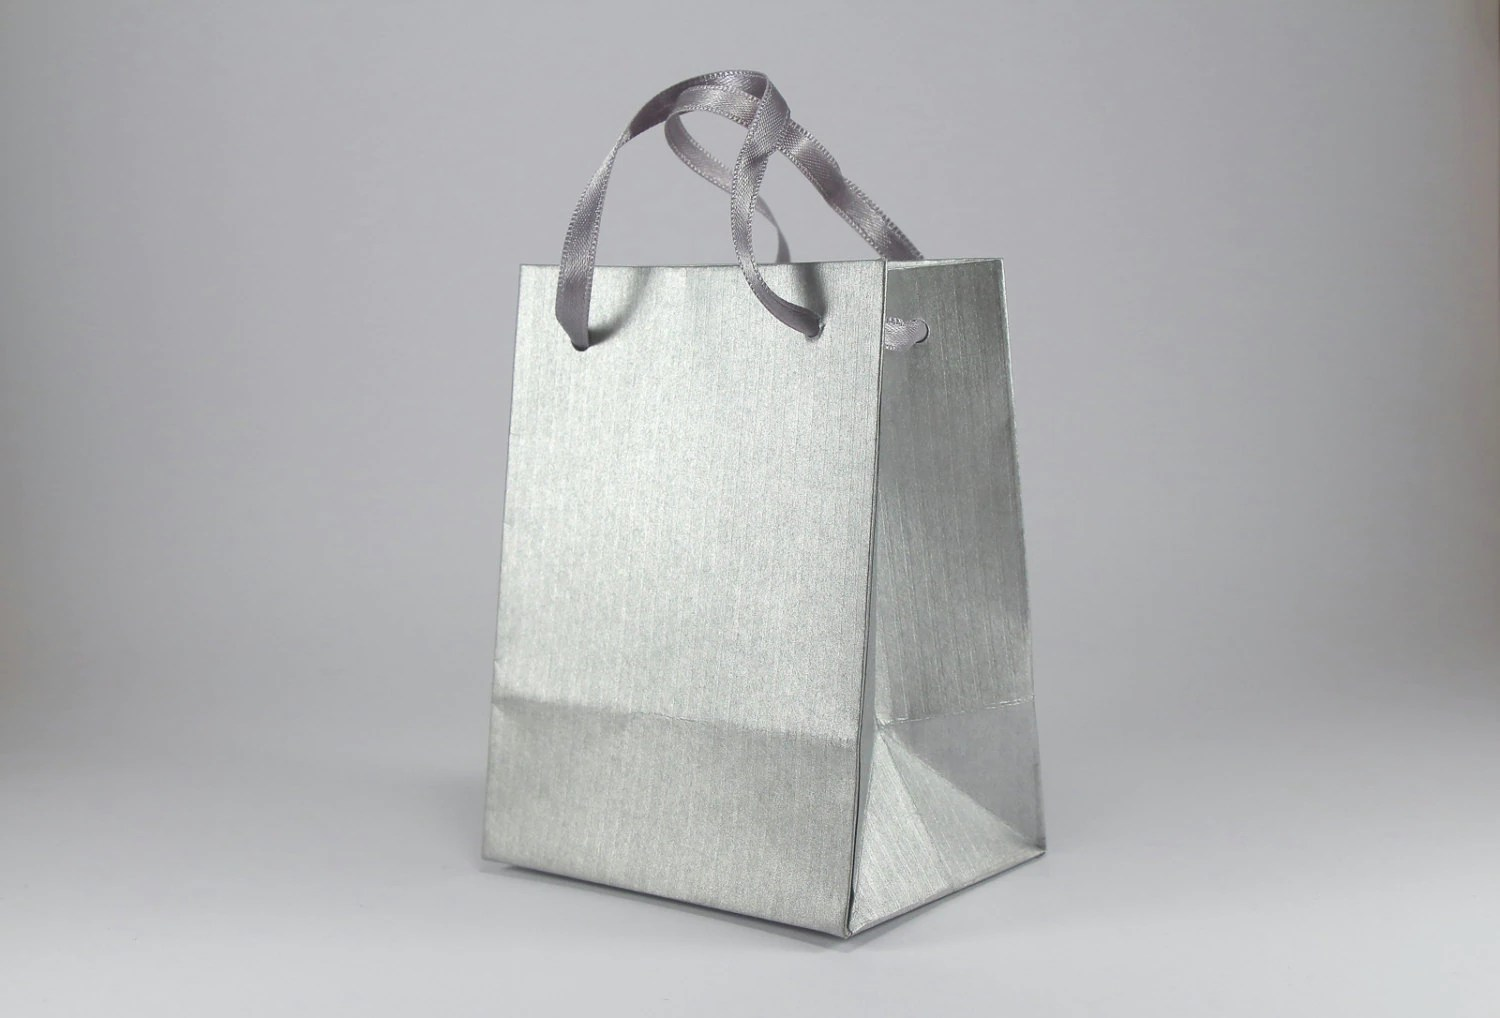 Paper Gift Bags Wholesale Small Handled Gift Bags Wholesale Stanford Center For